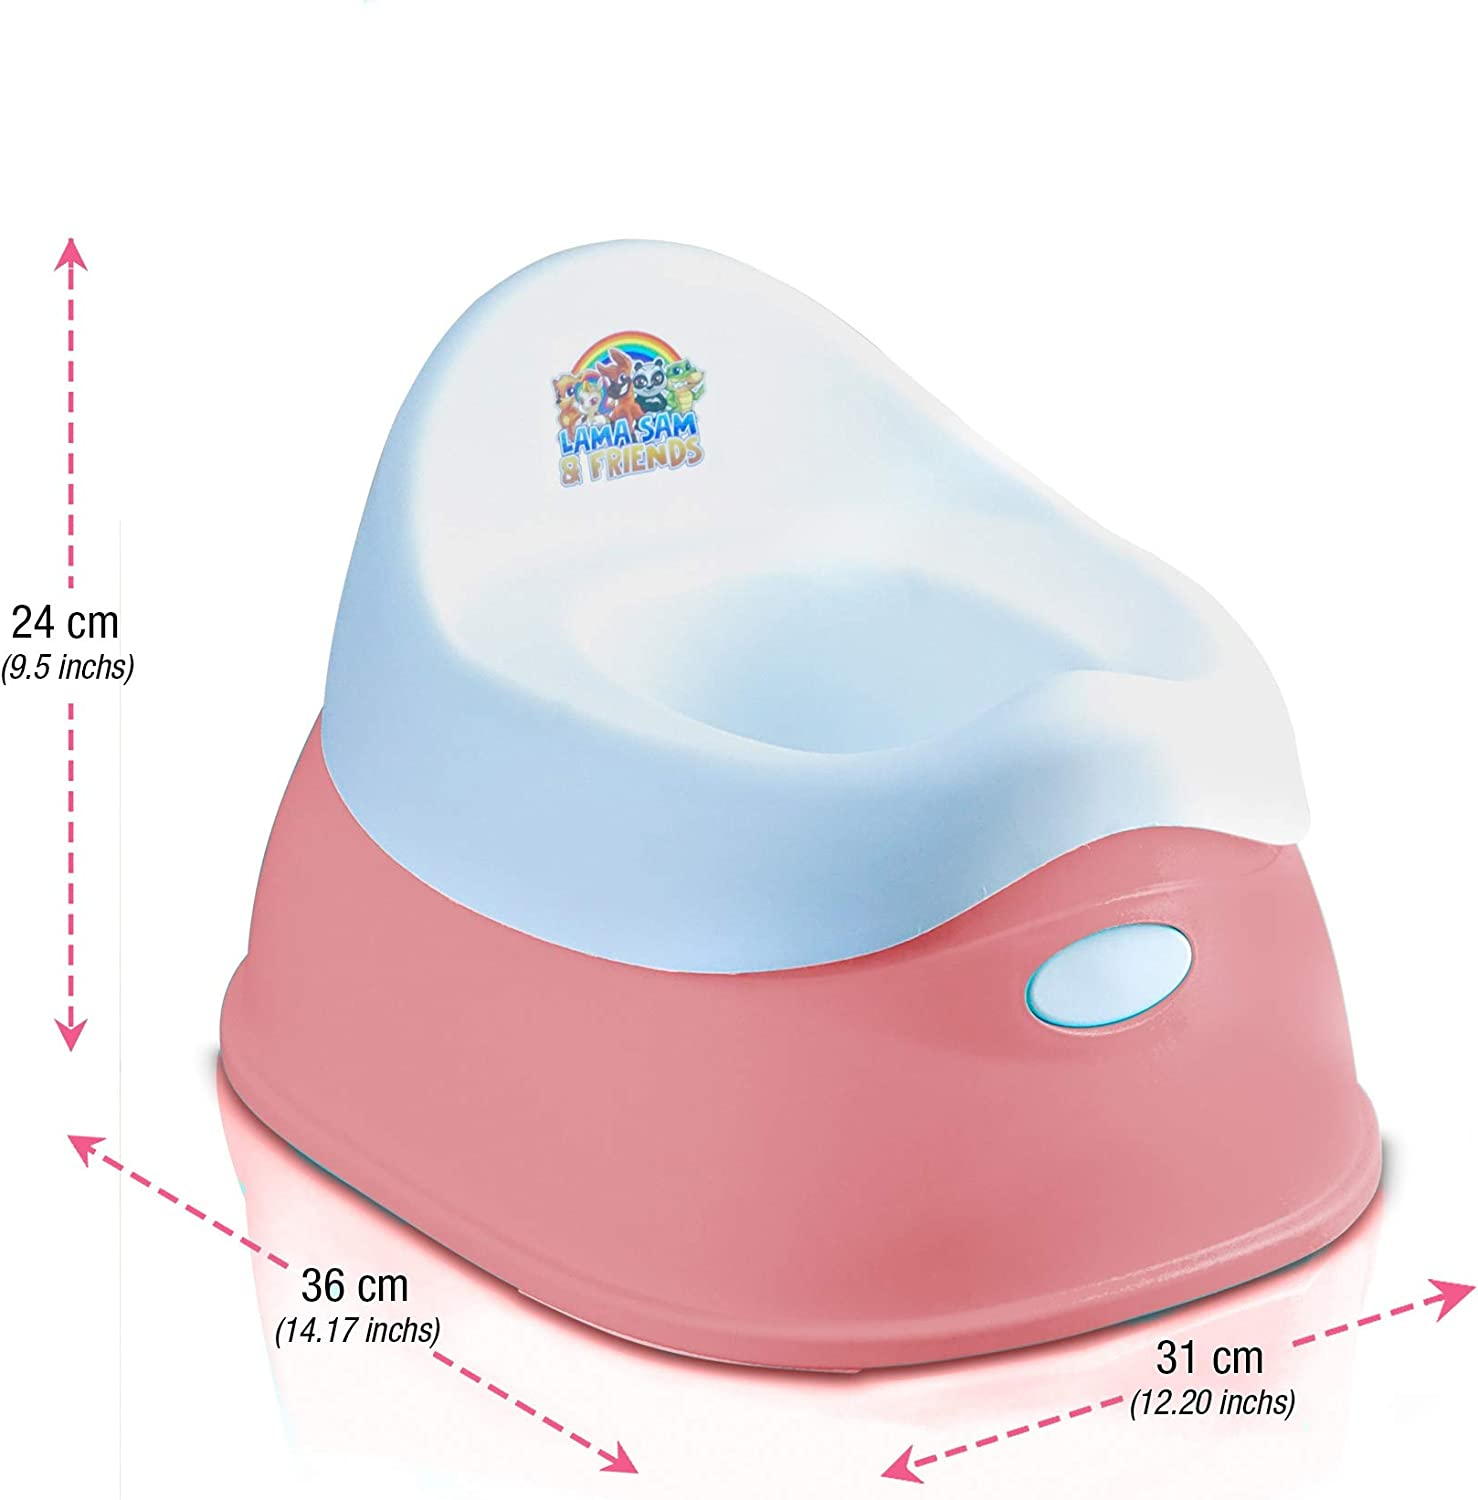 Smart Plastic Potty for Baby and /& Toddler Lama Sam /& Friends